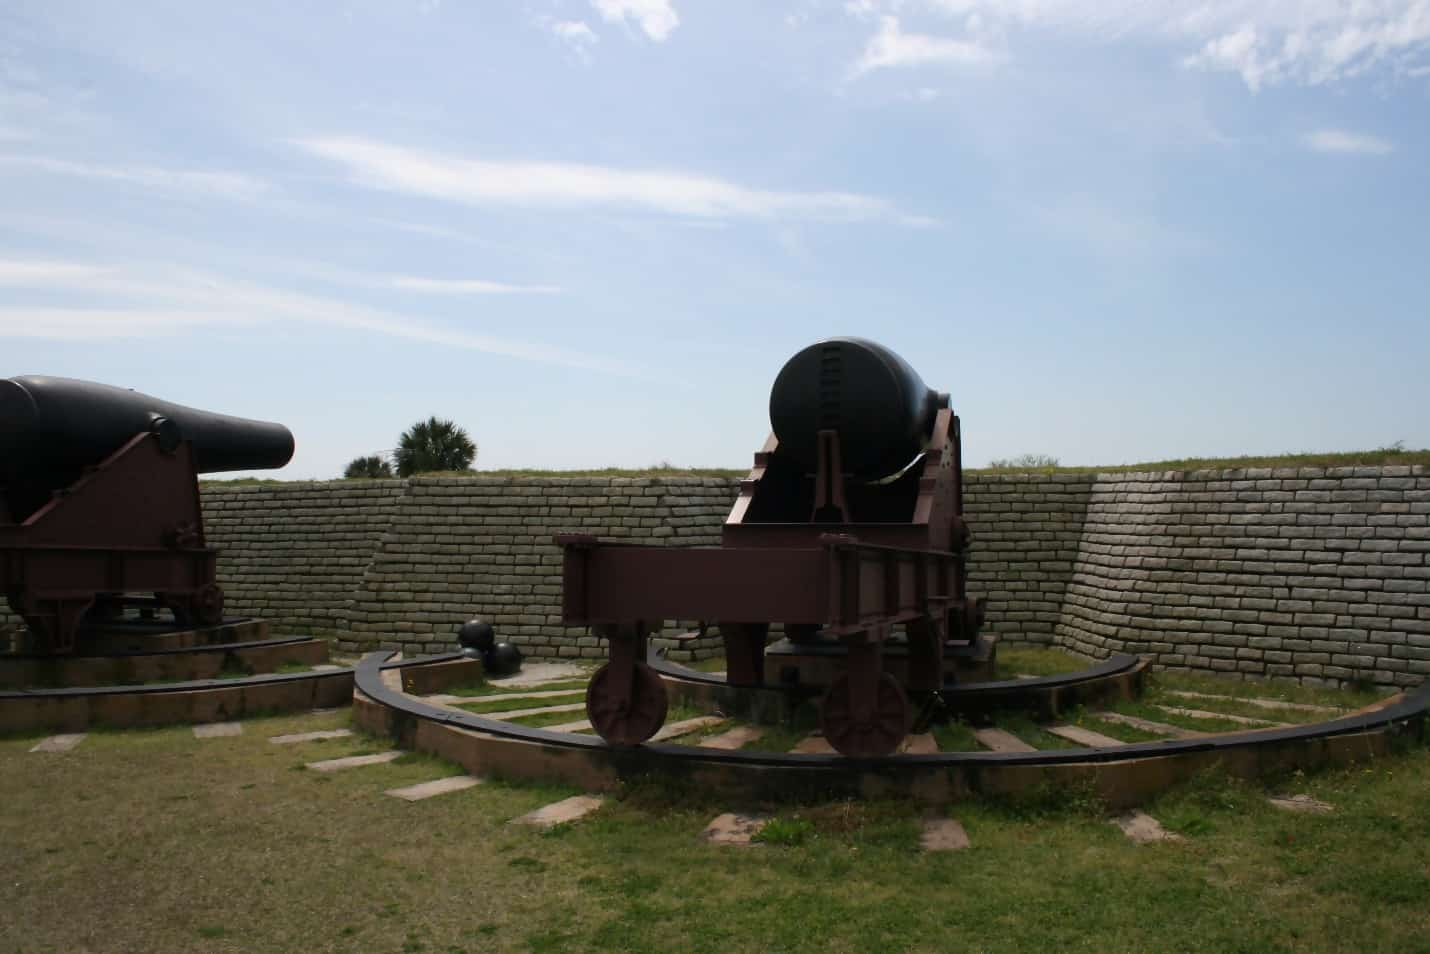 Fort Moultrie National Monument